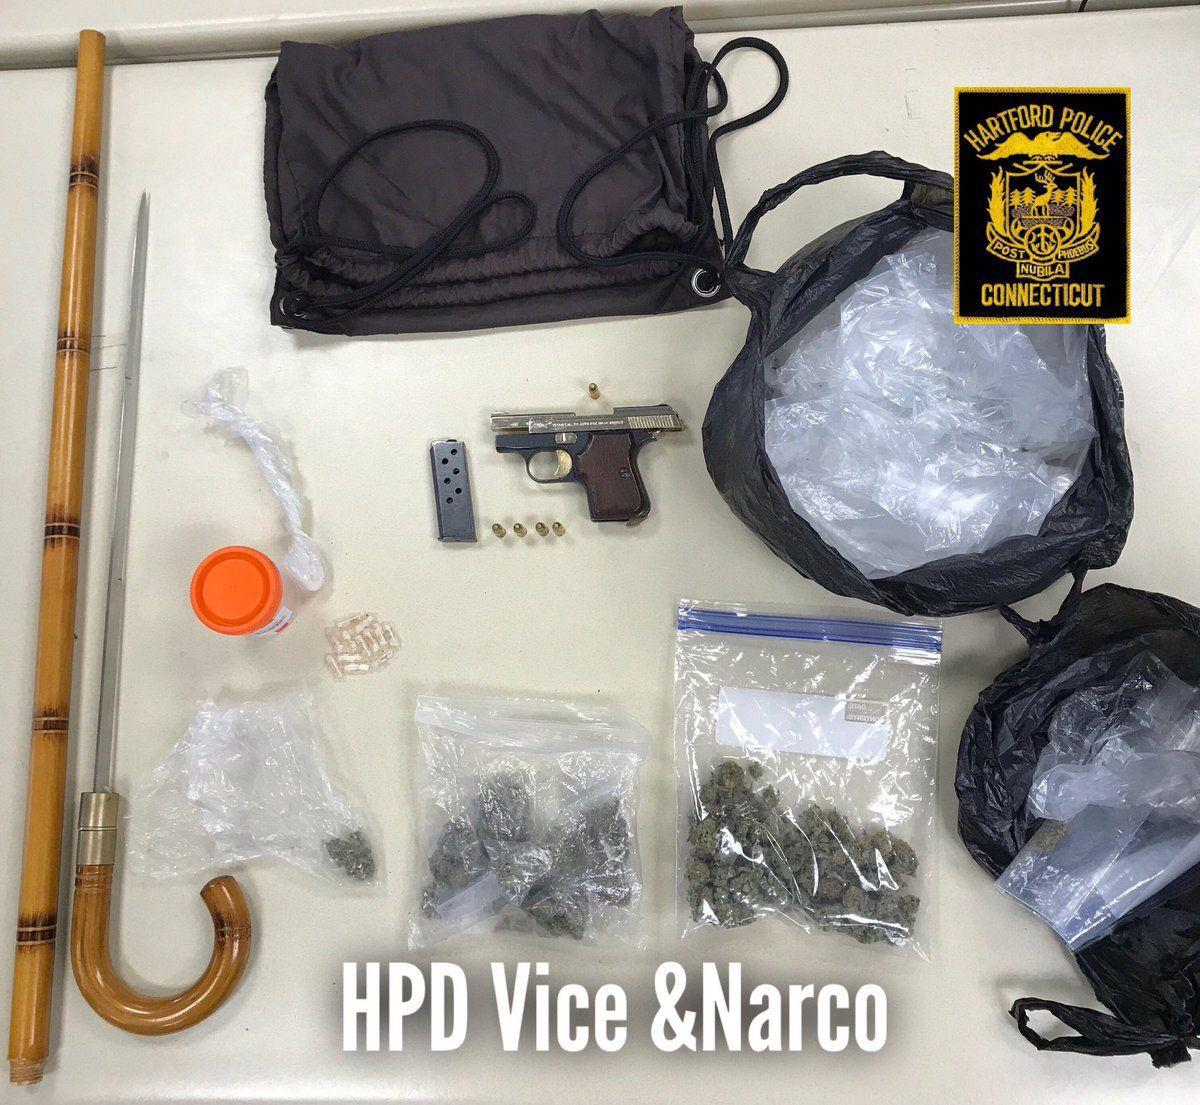 Weaving car leads to drugs, weapons arrest in Hartford